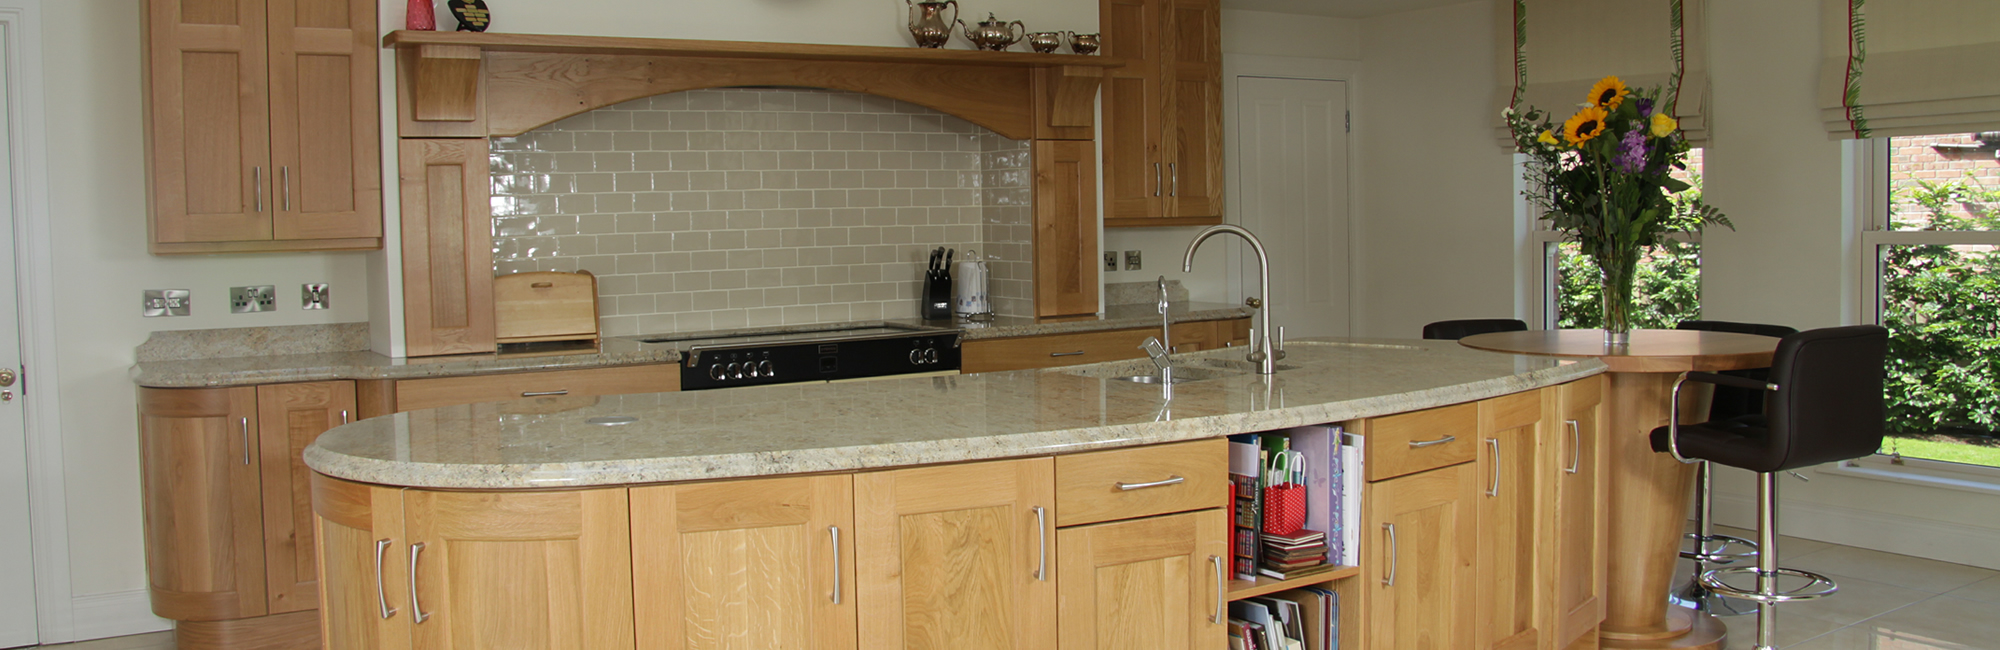 home hillside interiors county down kitchens northern ireland